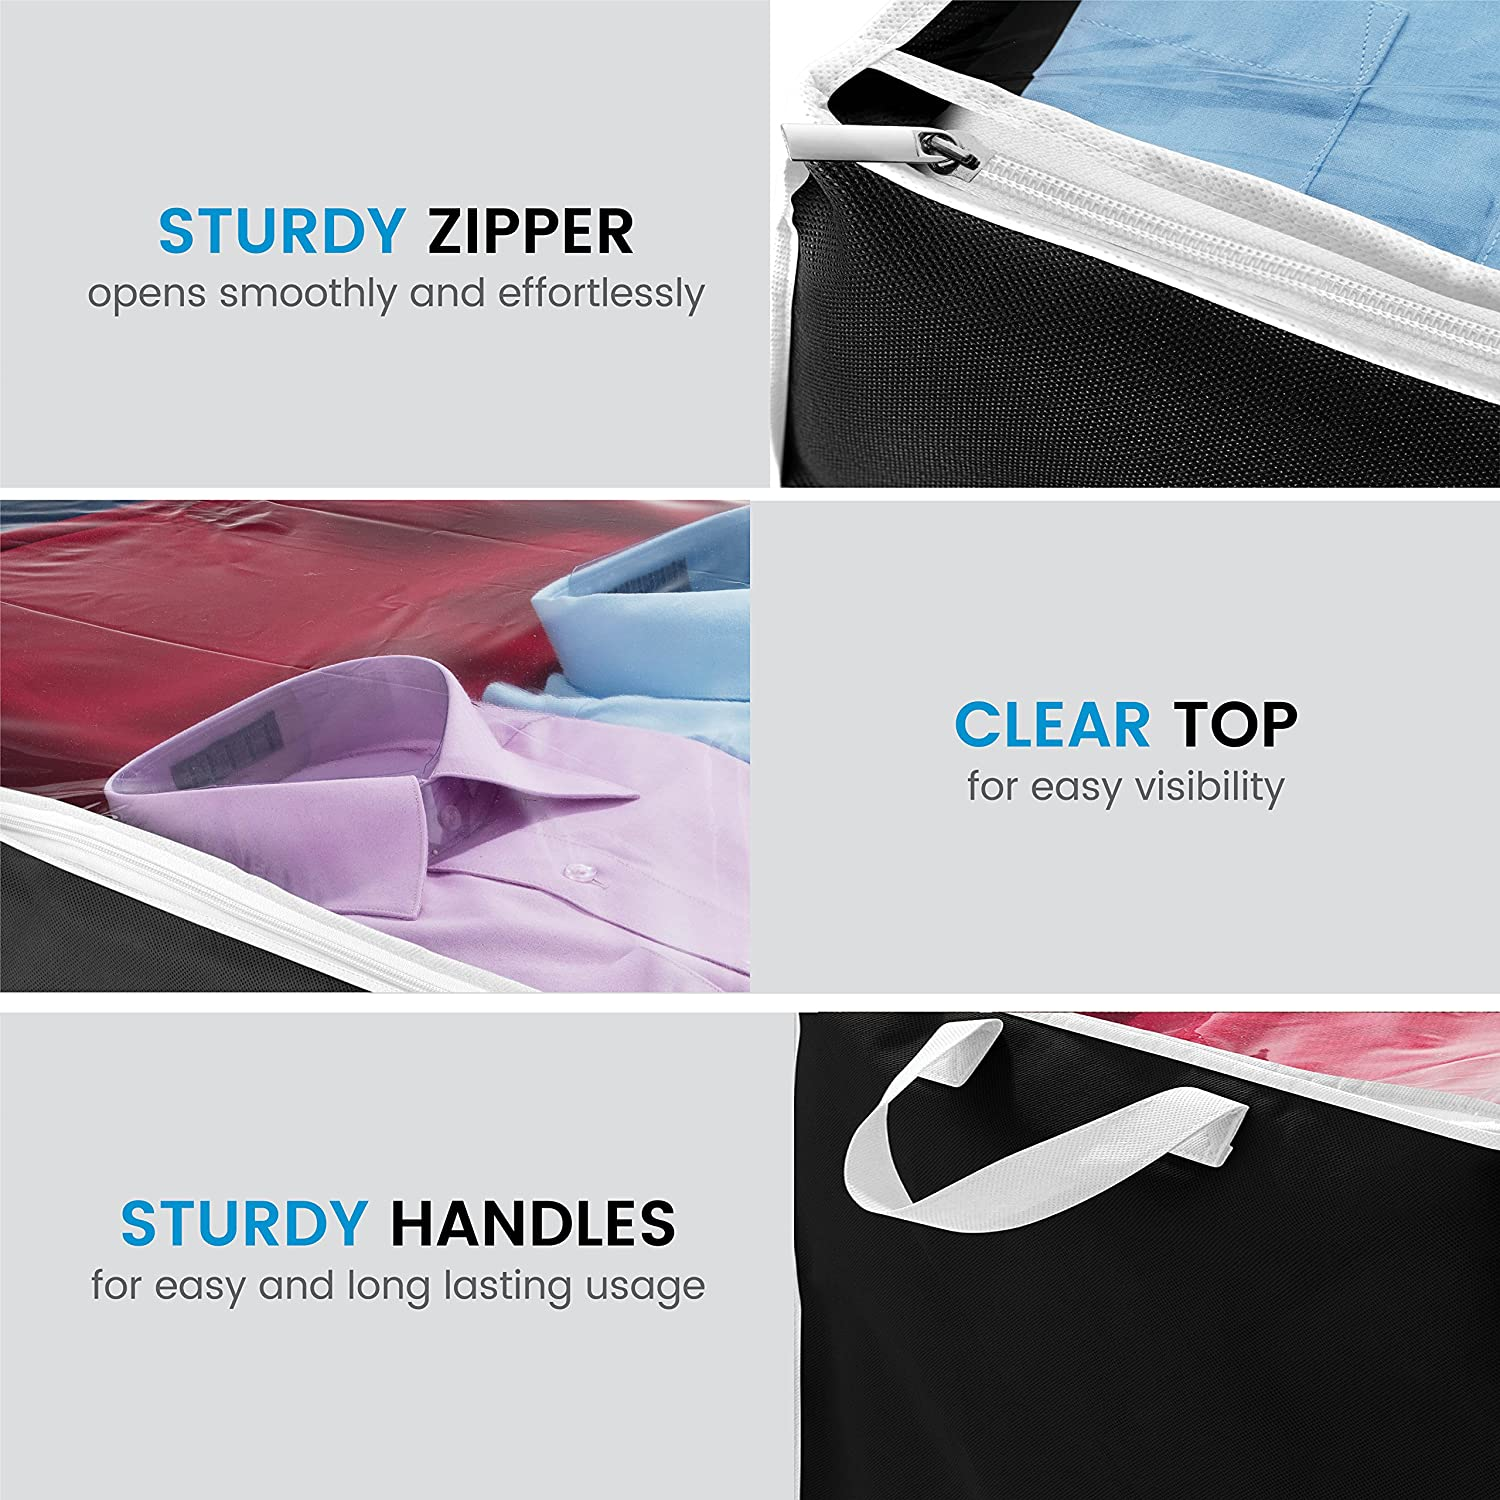 Pack of 2 Black Shoes Breathable Polypropylene Storage Bags for Blankets Clothes and Linens 18 x 42 x 6 inches Zober Flexible Zippered Underbed Storage Bag